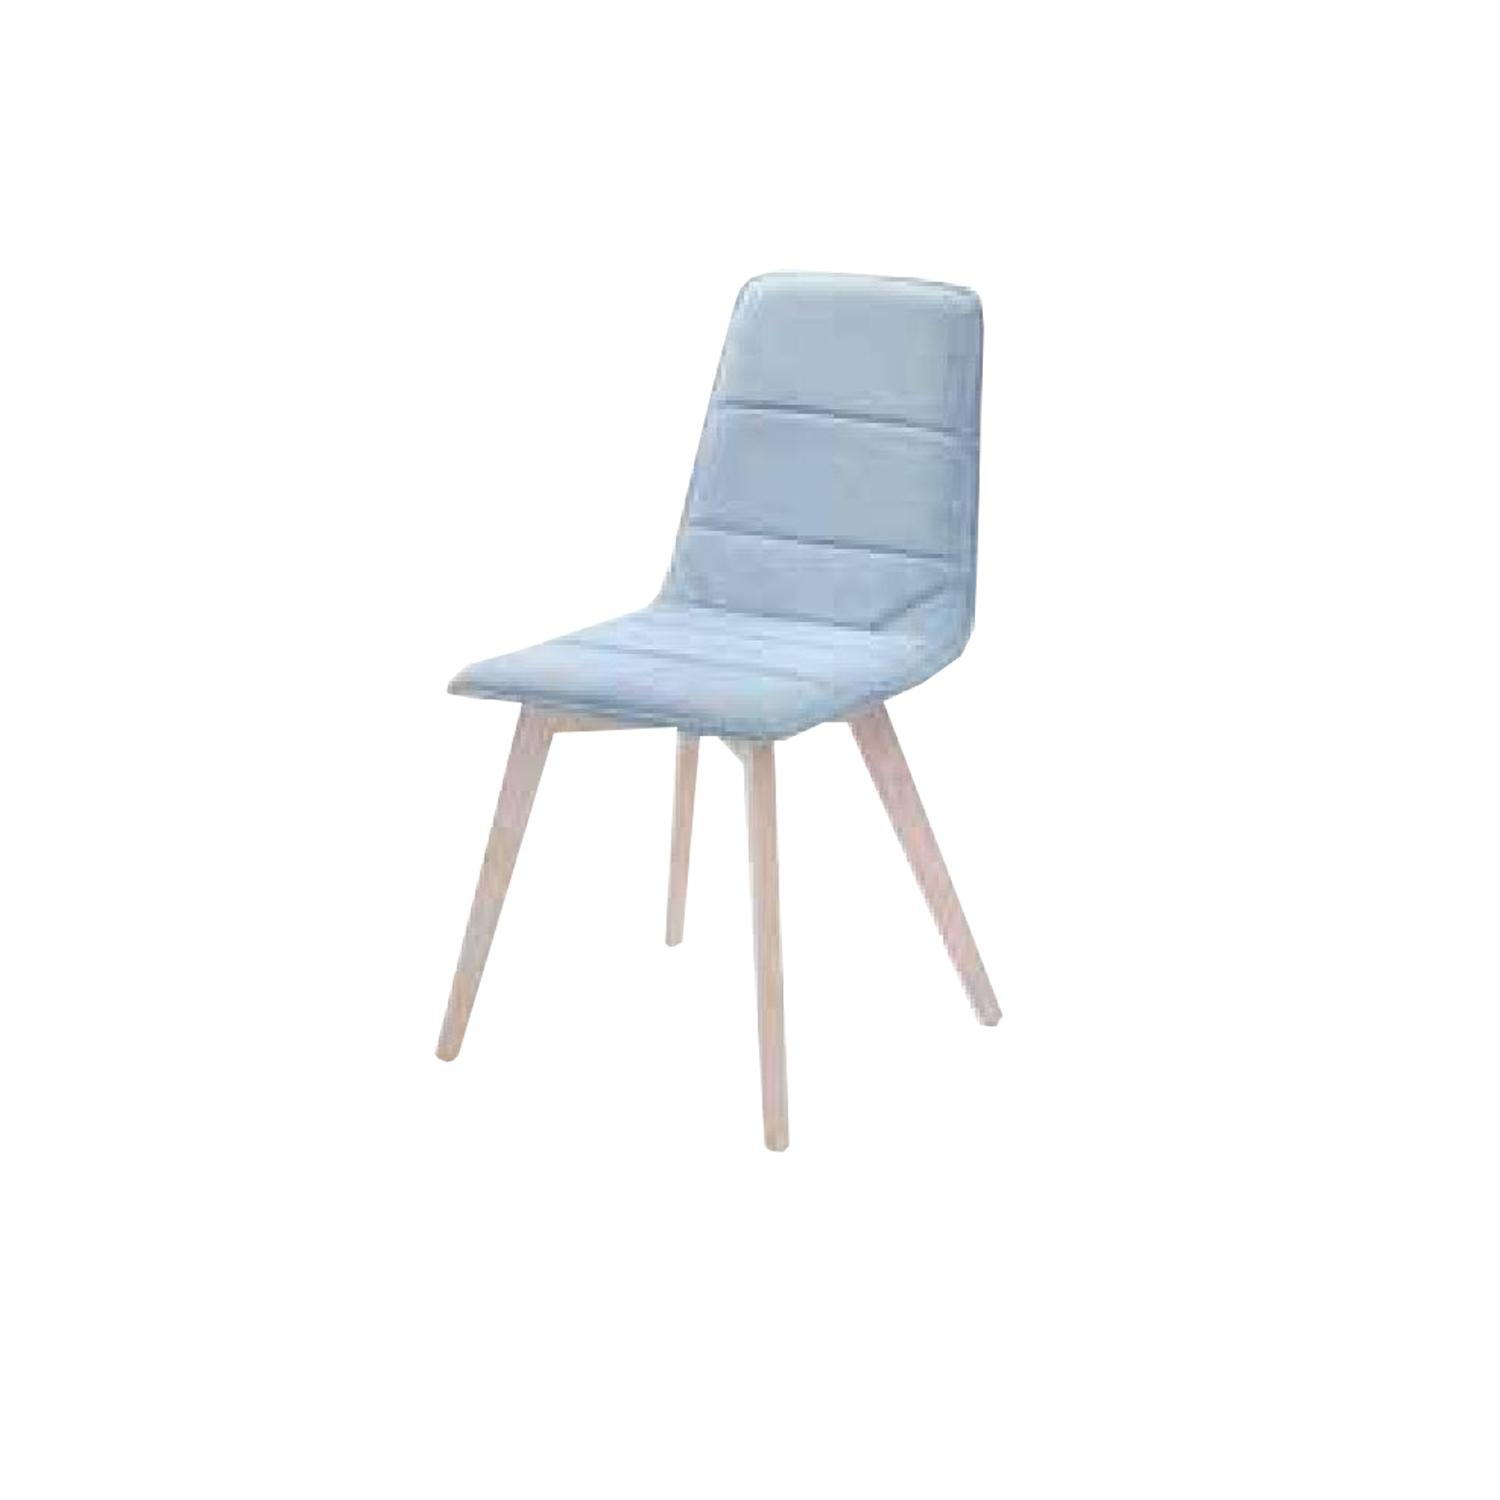 Benedek 2 Dining Chair